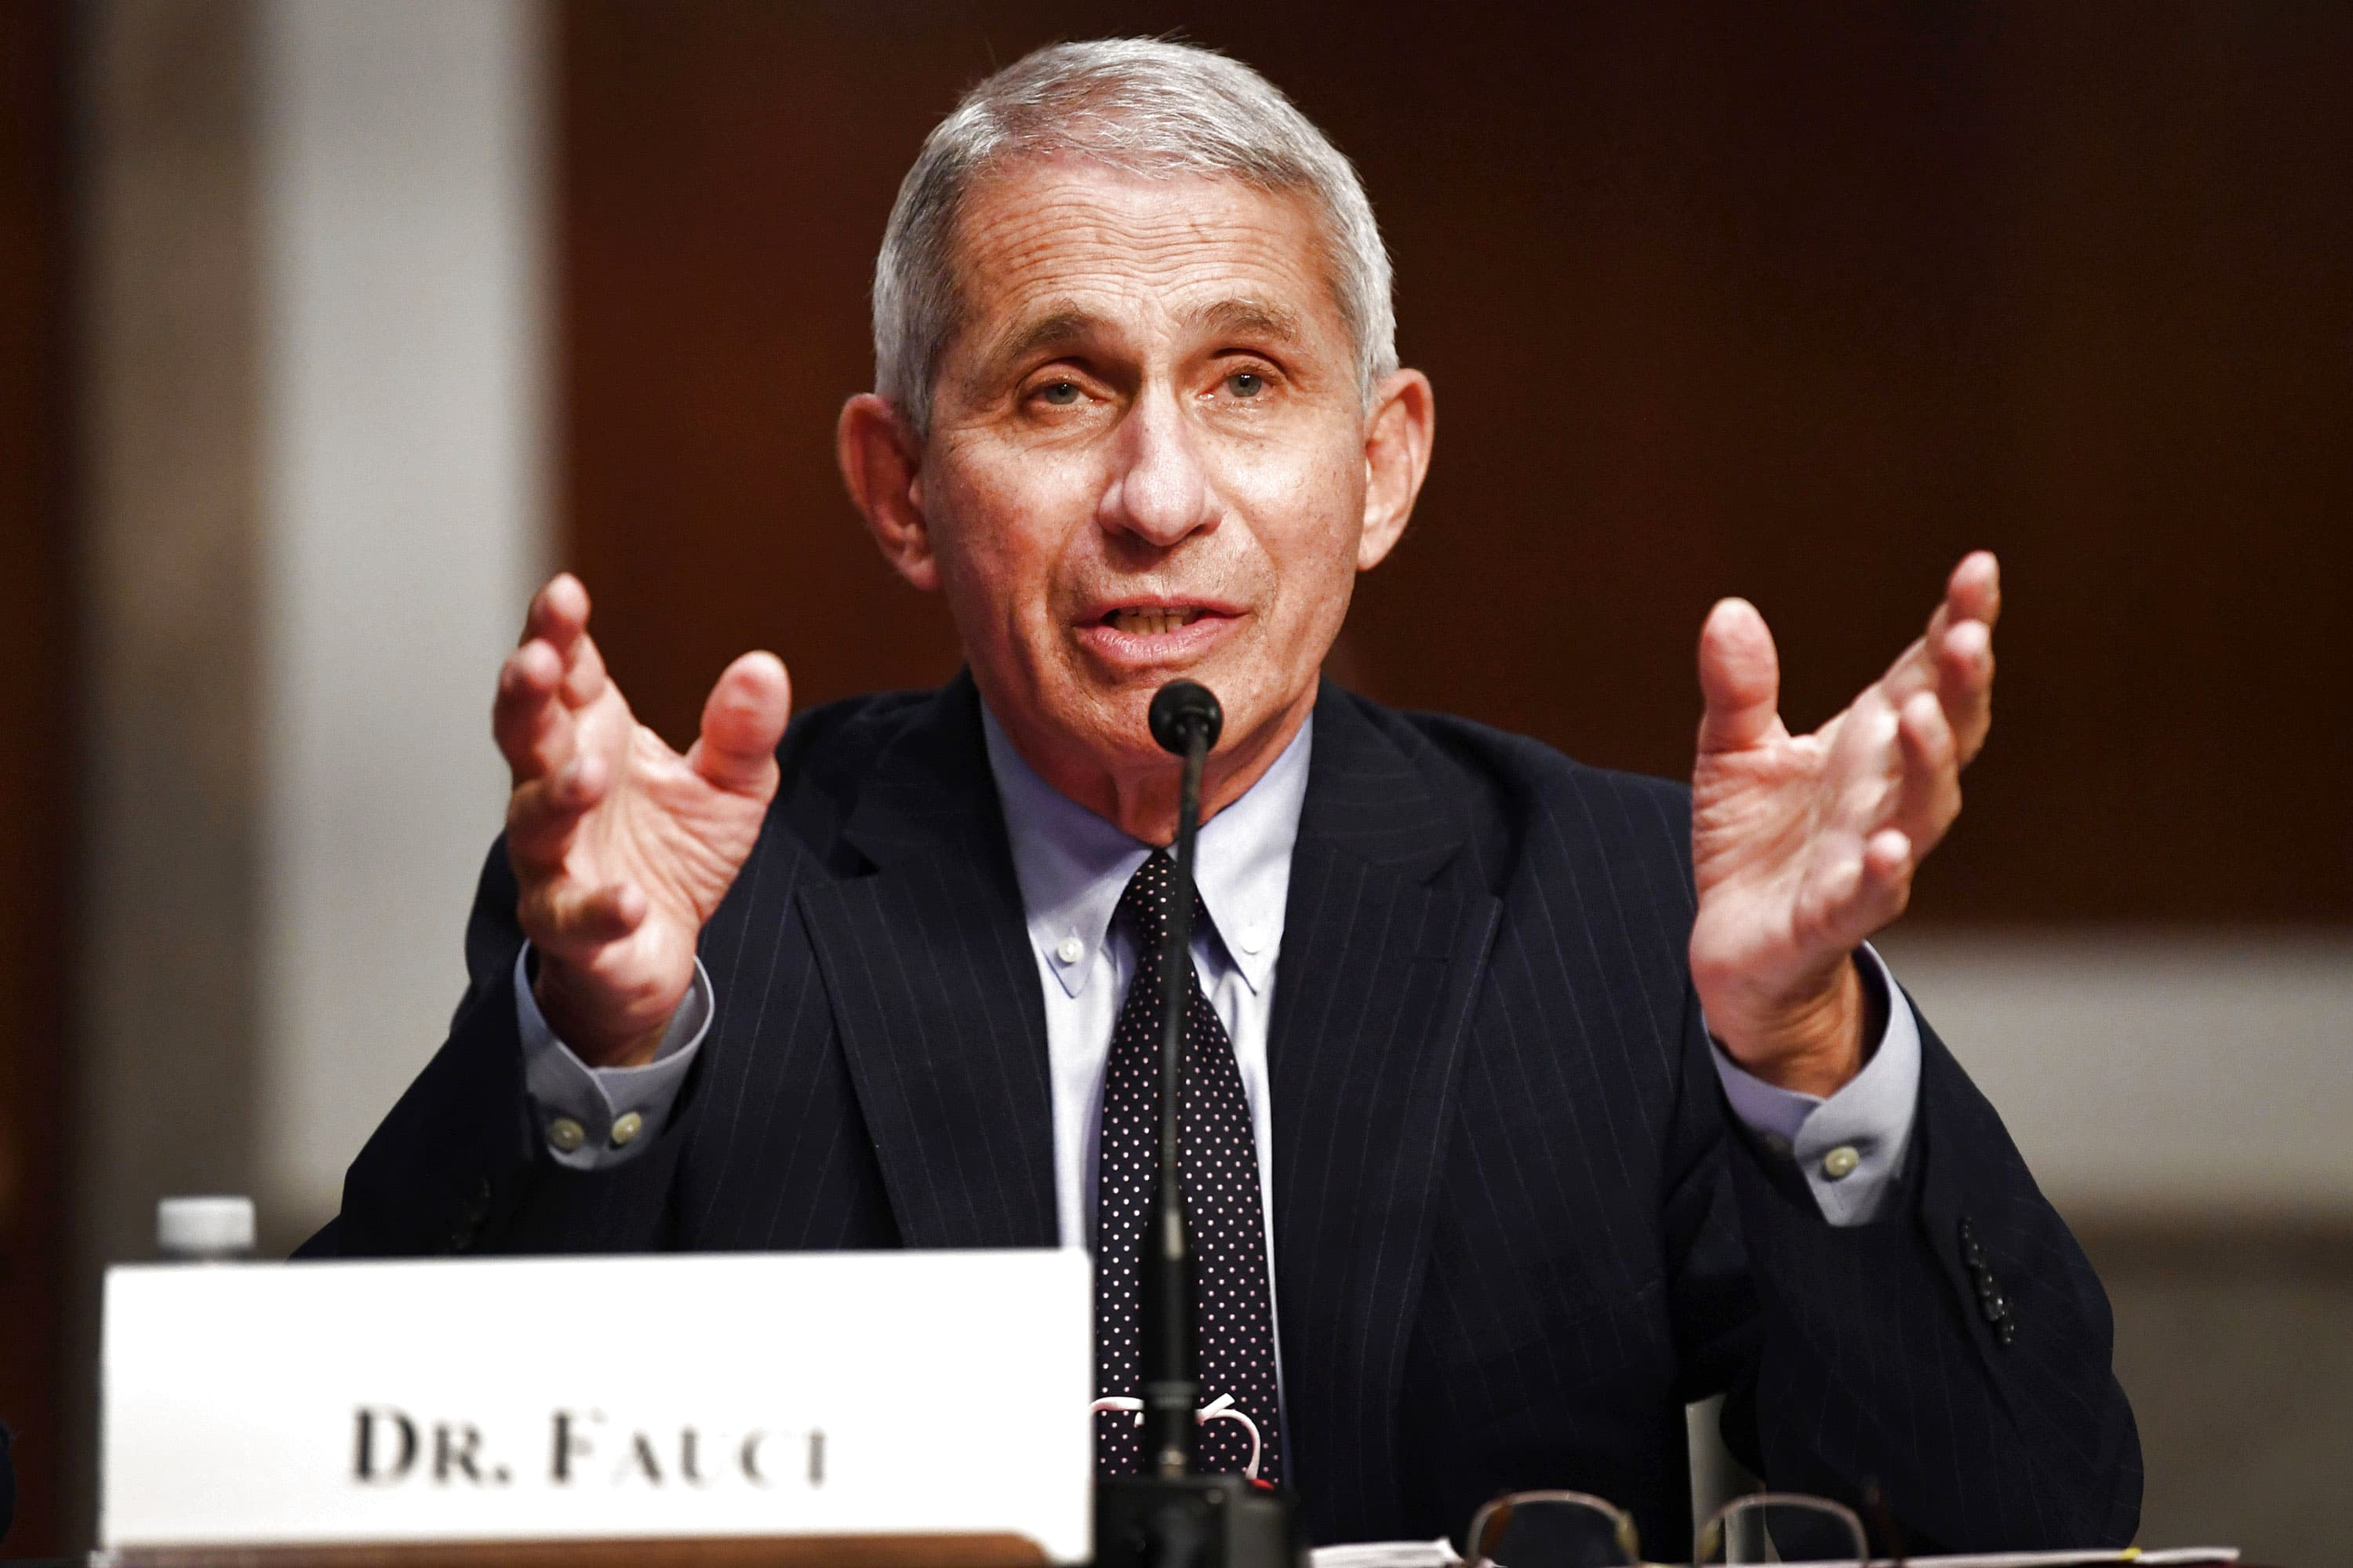 Fauci tells Congress 'it might take some time' before general public gets a coronavirus vaccine